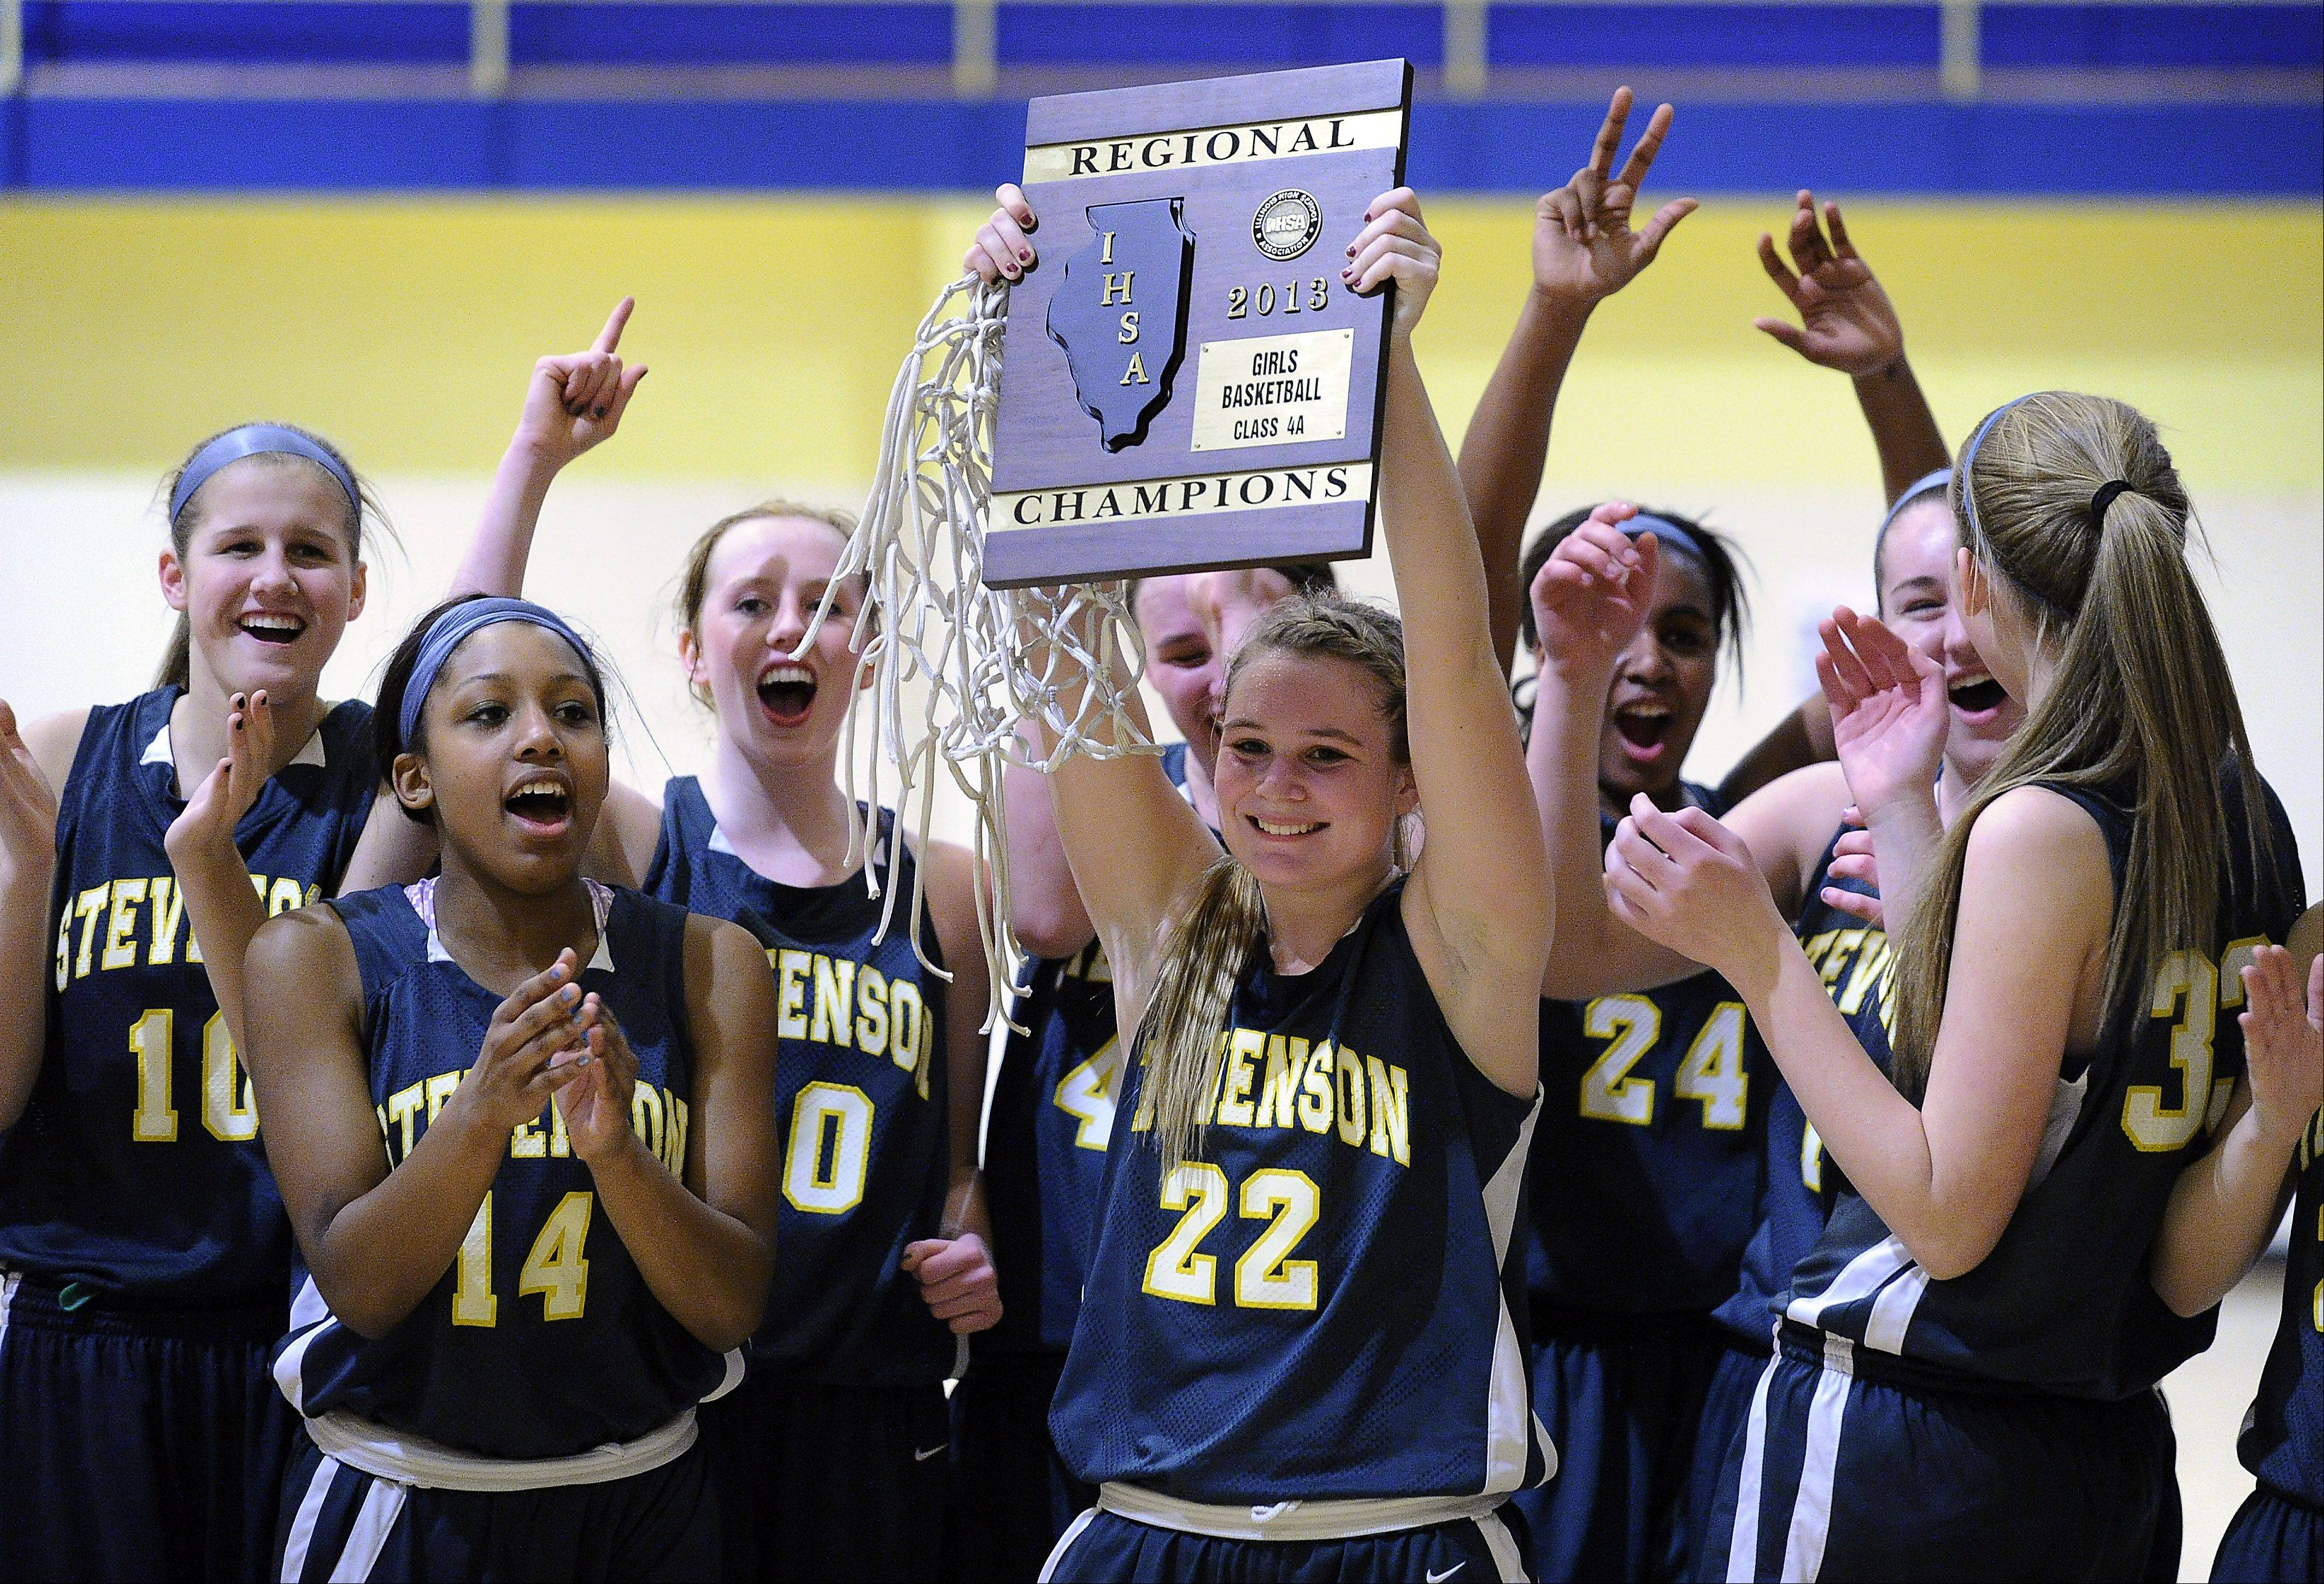 Stevenson's Kari Moffat holds up the Class 4A regional championship plaque while her teammates celebrate after defeating Palatine in Thursday's game in Wheeling.